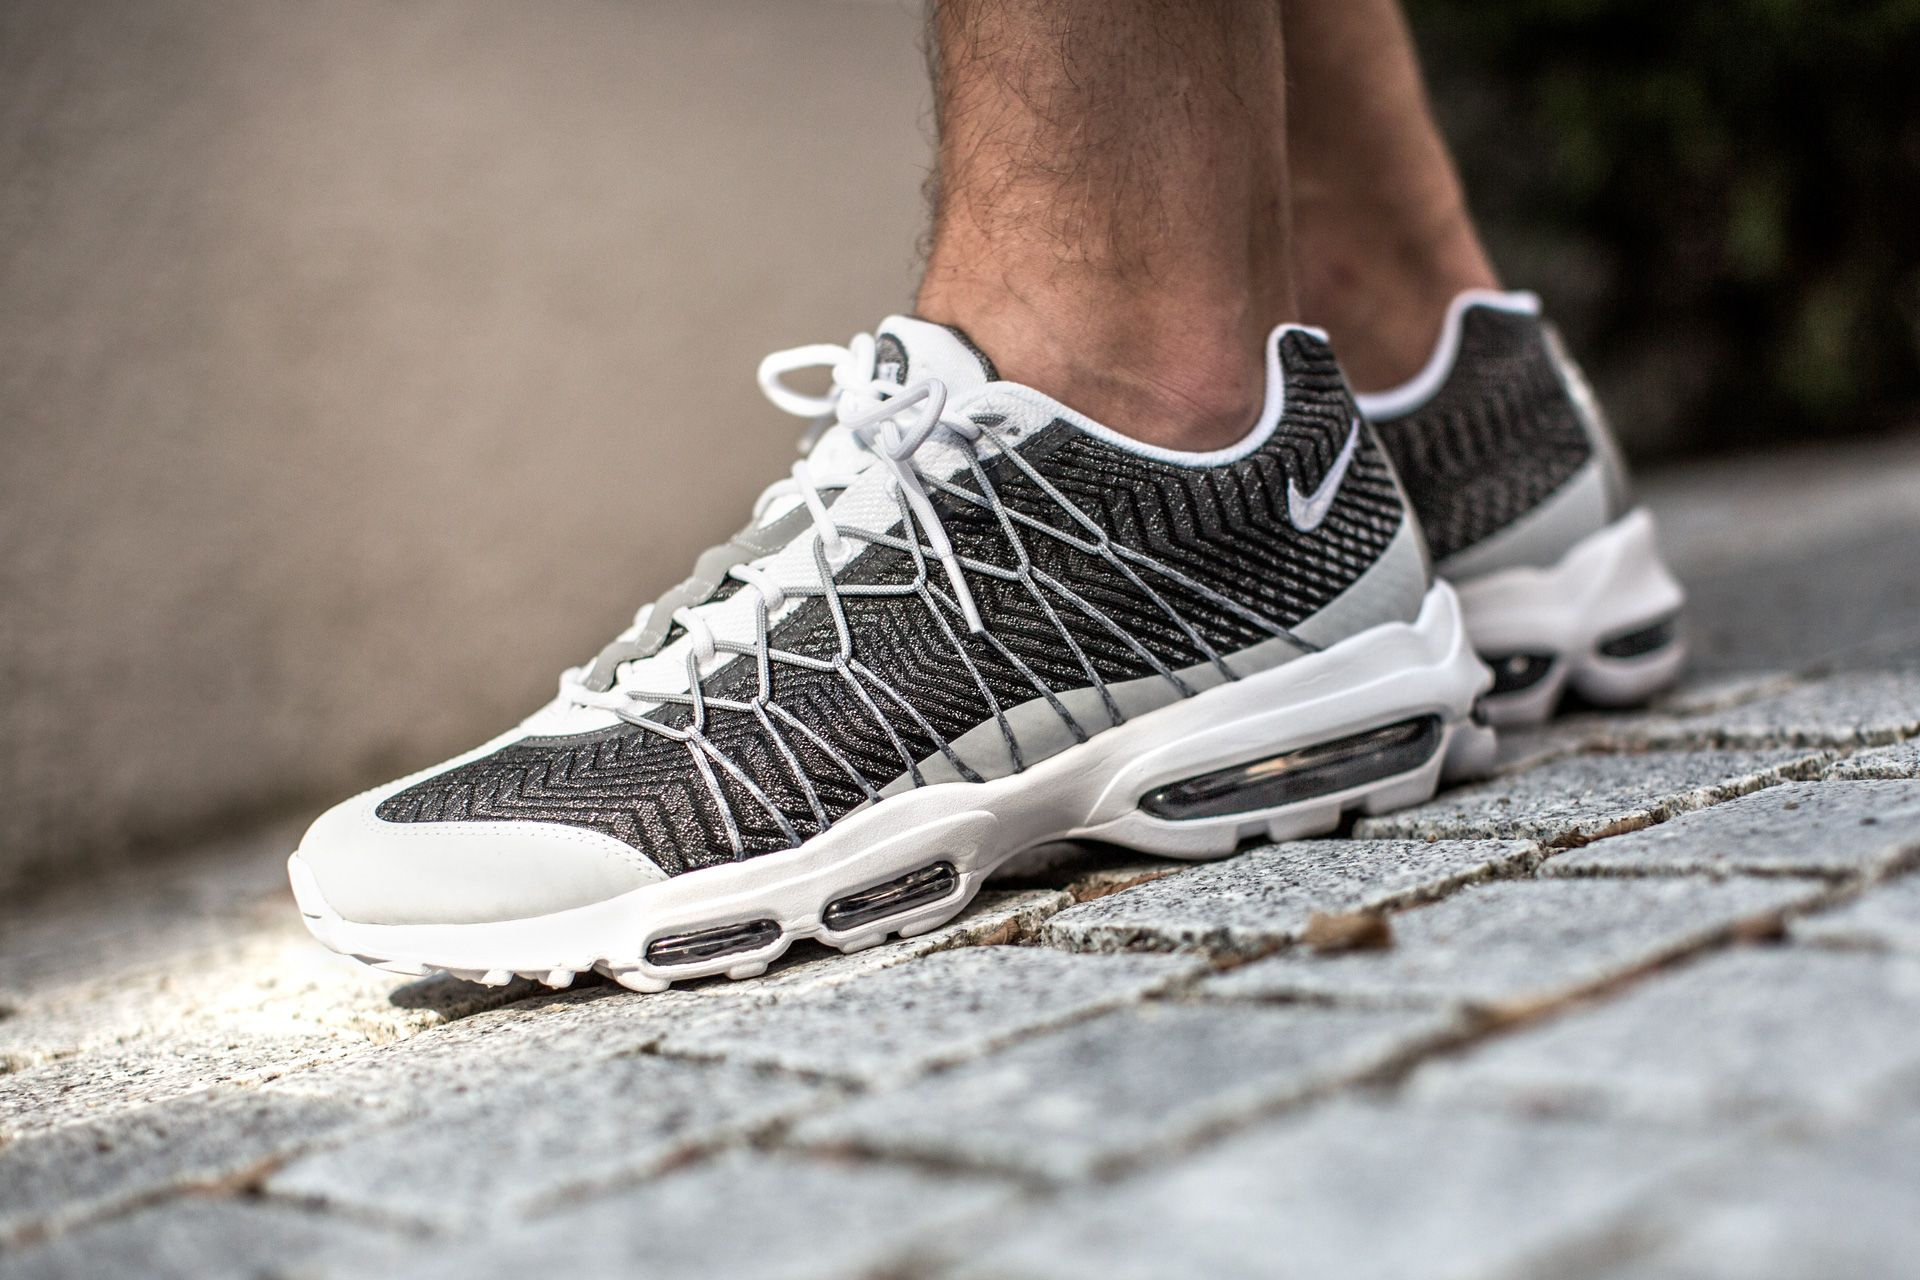 NIKE AIR MAX 95 ULTRA JCRD WHITEWHITE WOLF GREY DRK GREY